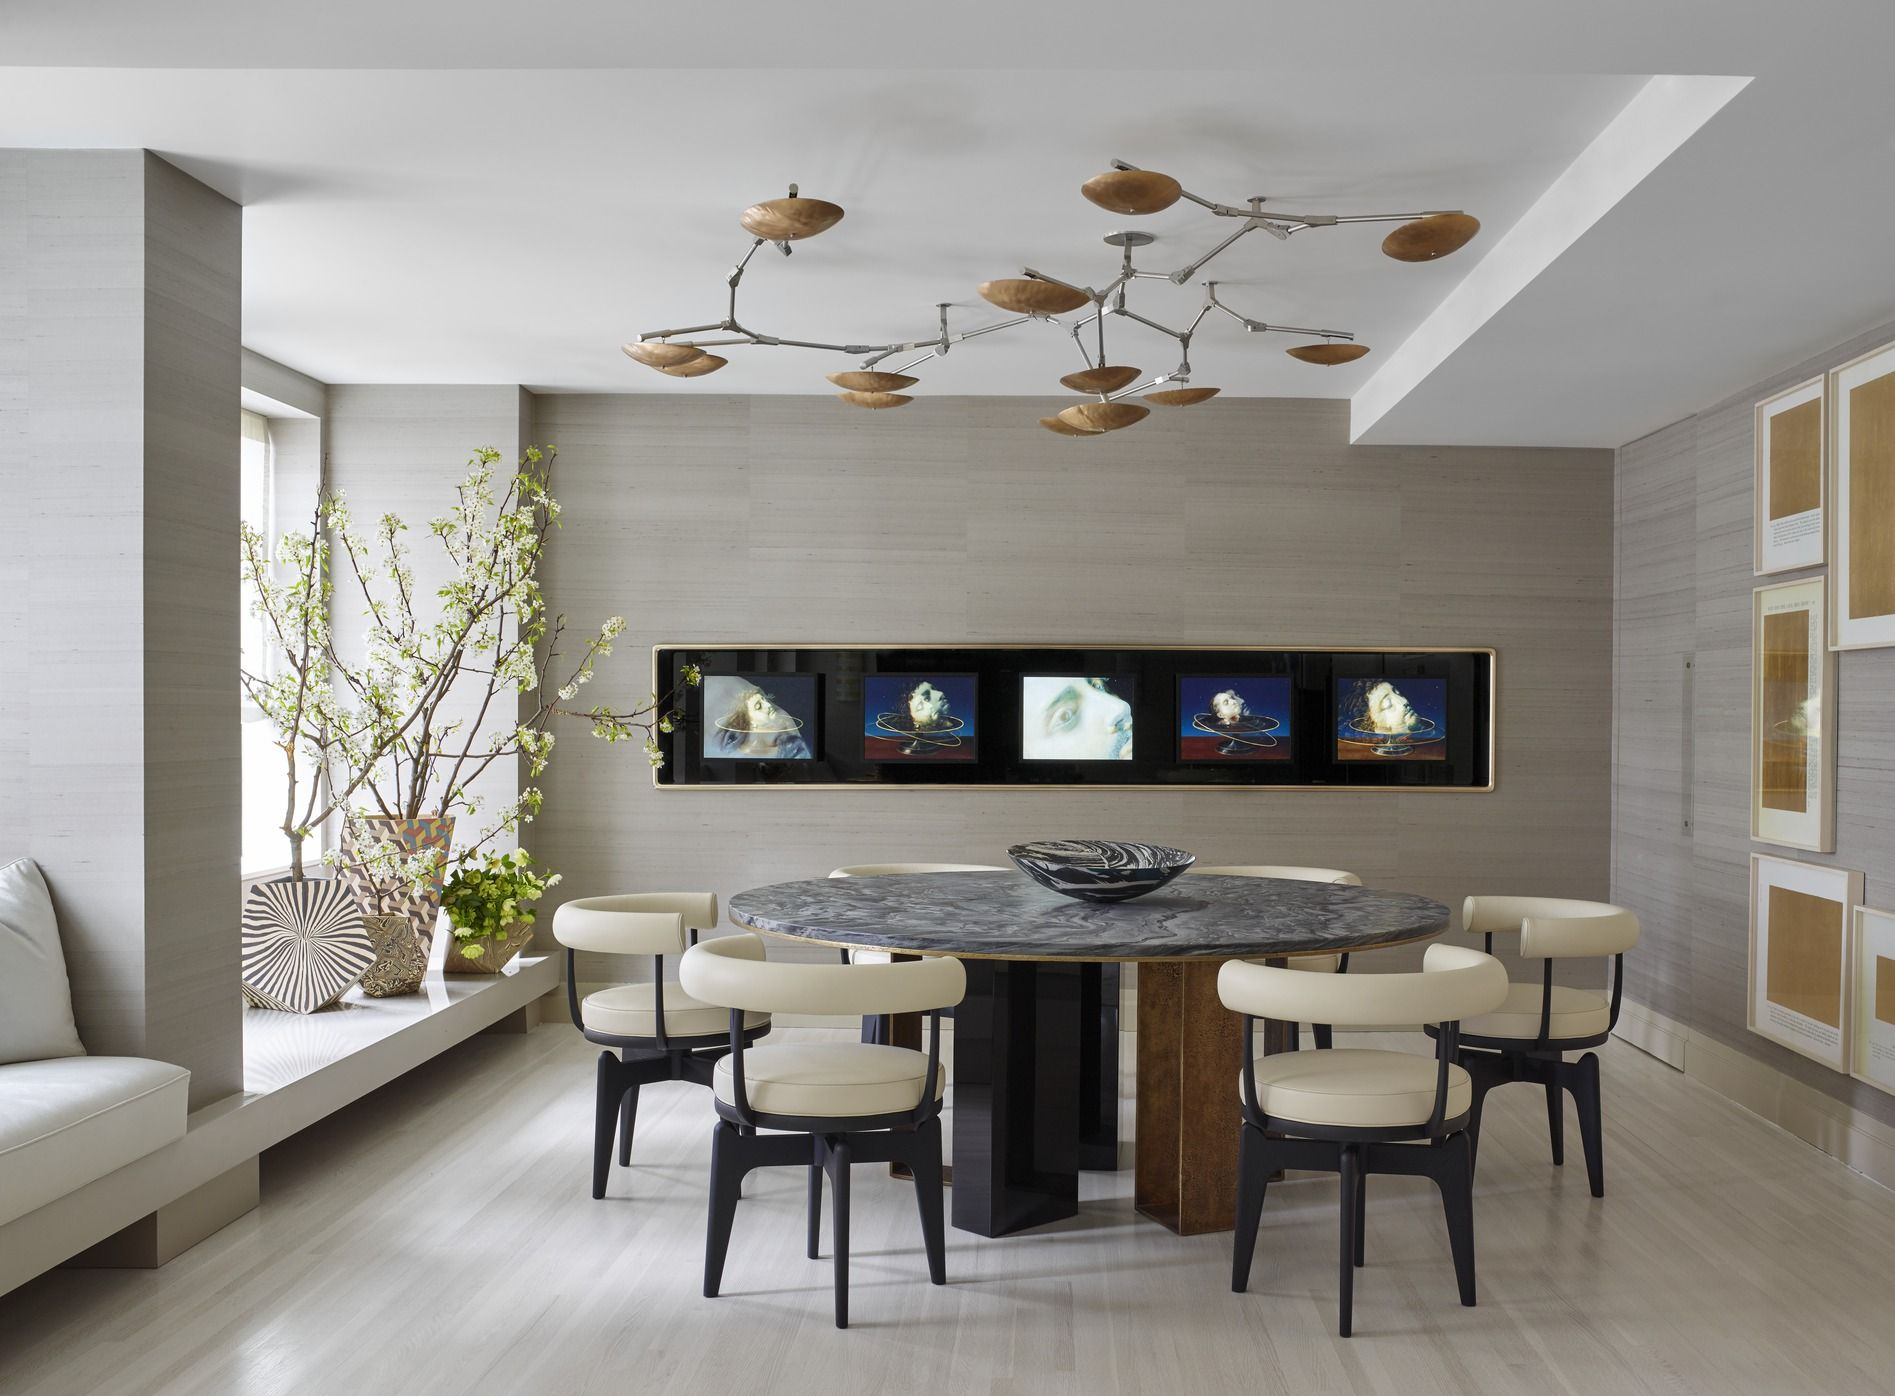 Dining room wall designs - 25 Modern Dining Room Decorating Ideas Contemporary Dining Room Furniture